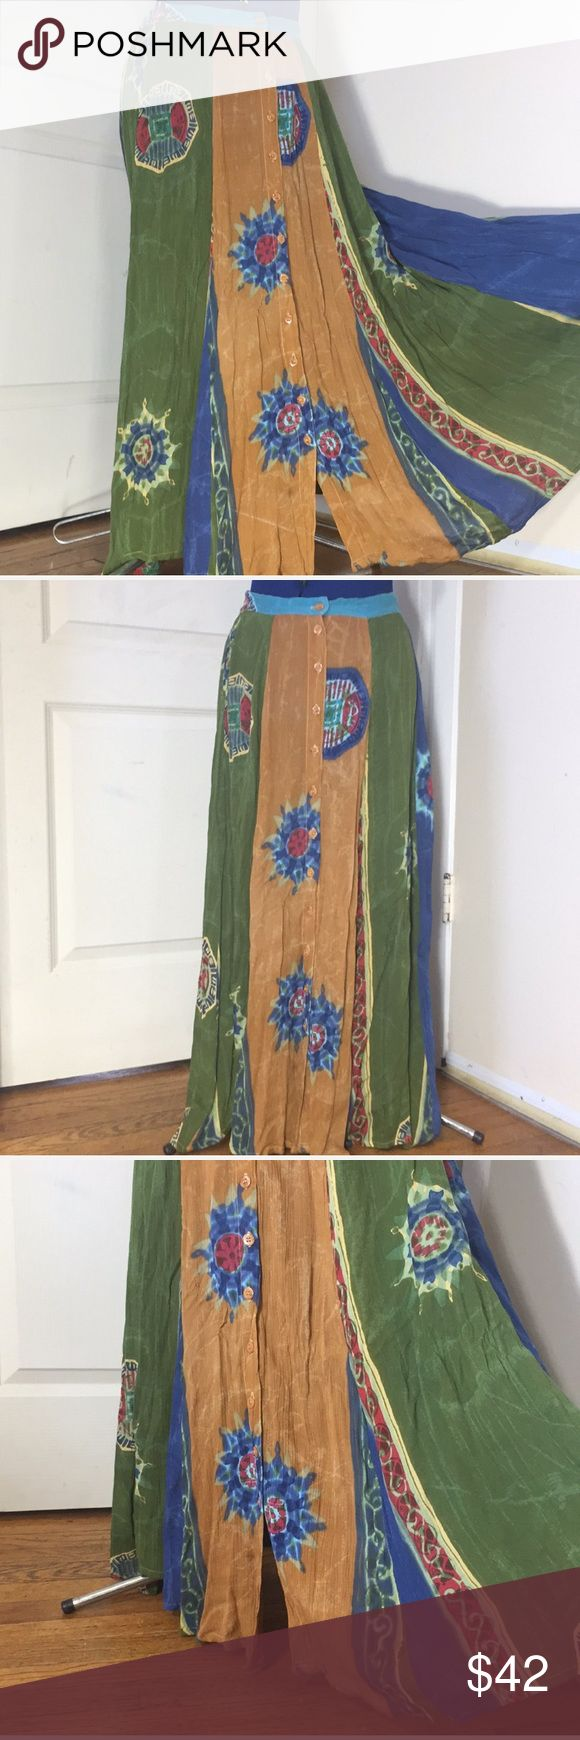 """Boho tribal maxi skirt button down 30"""" waist Great condition. New with tags. Never worn. Didn't fit. Tag says Small, fits like a Medium/Large. Material 100% Rayon Back of waistband is elastic  Waist 30"""" unstretched  Made in India  Any questions just ask :) Skirts Maxi"""